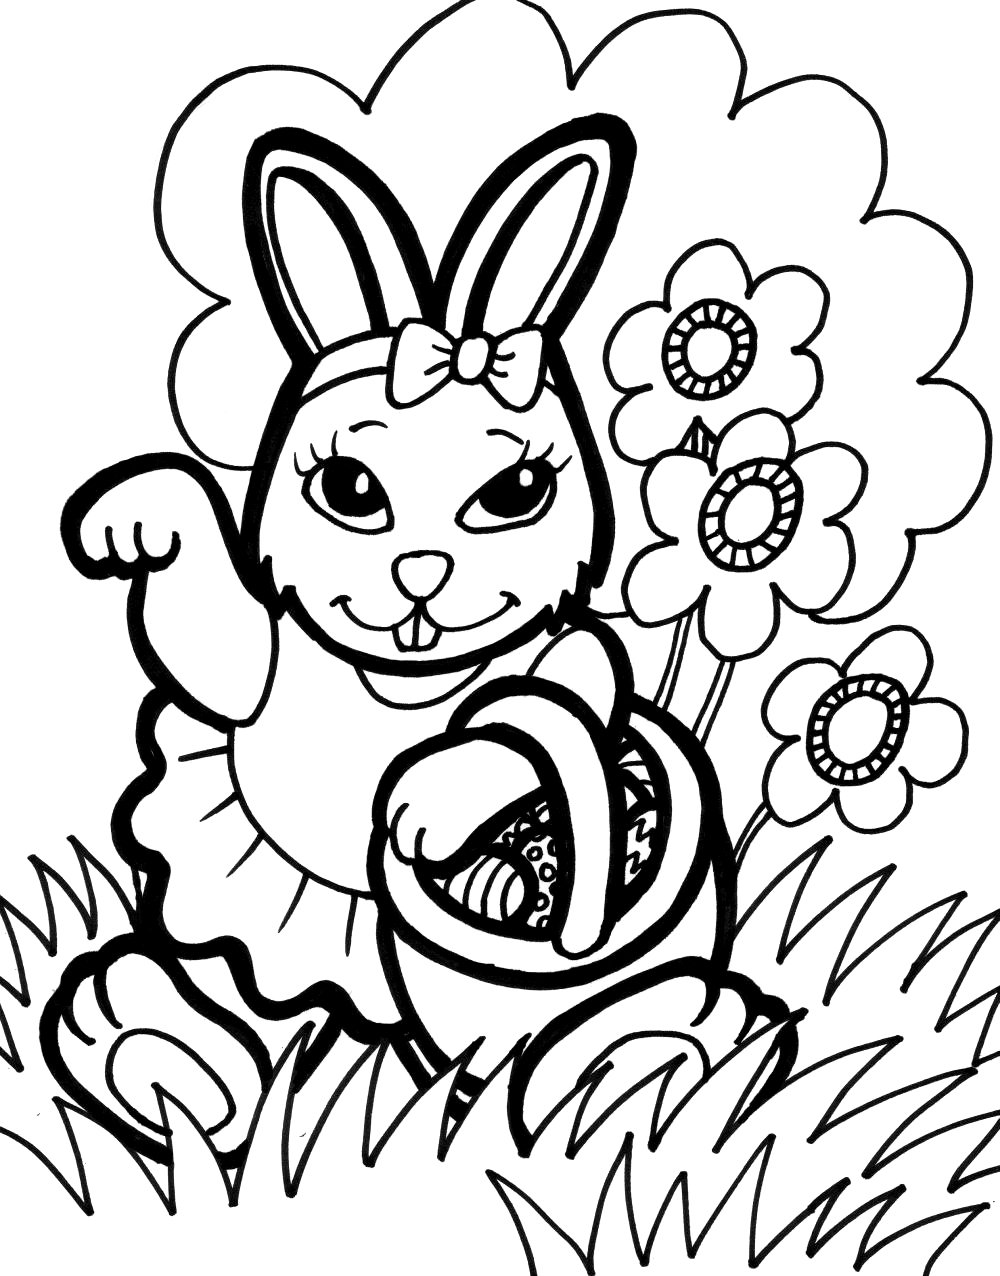 Great Pictures Of Bunnies To Color 19  652